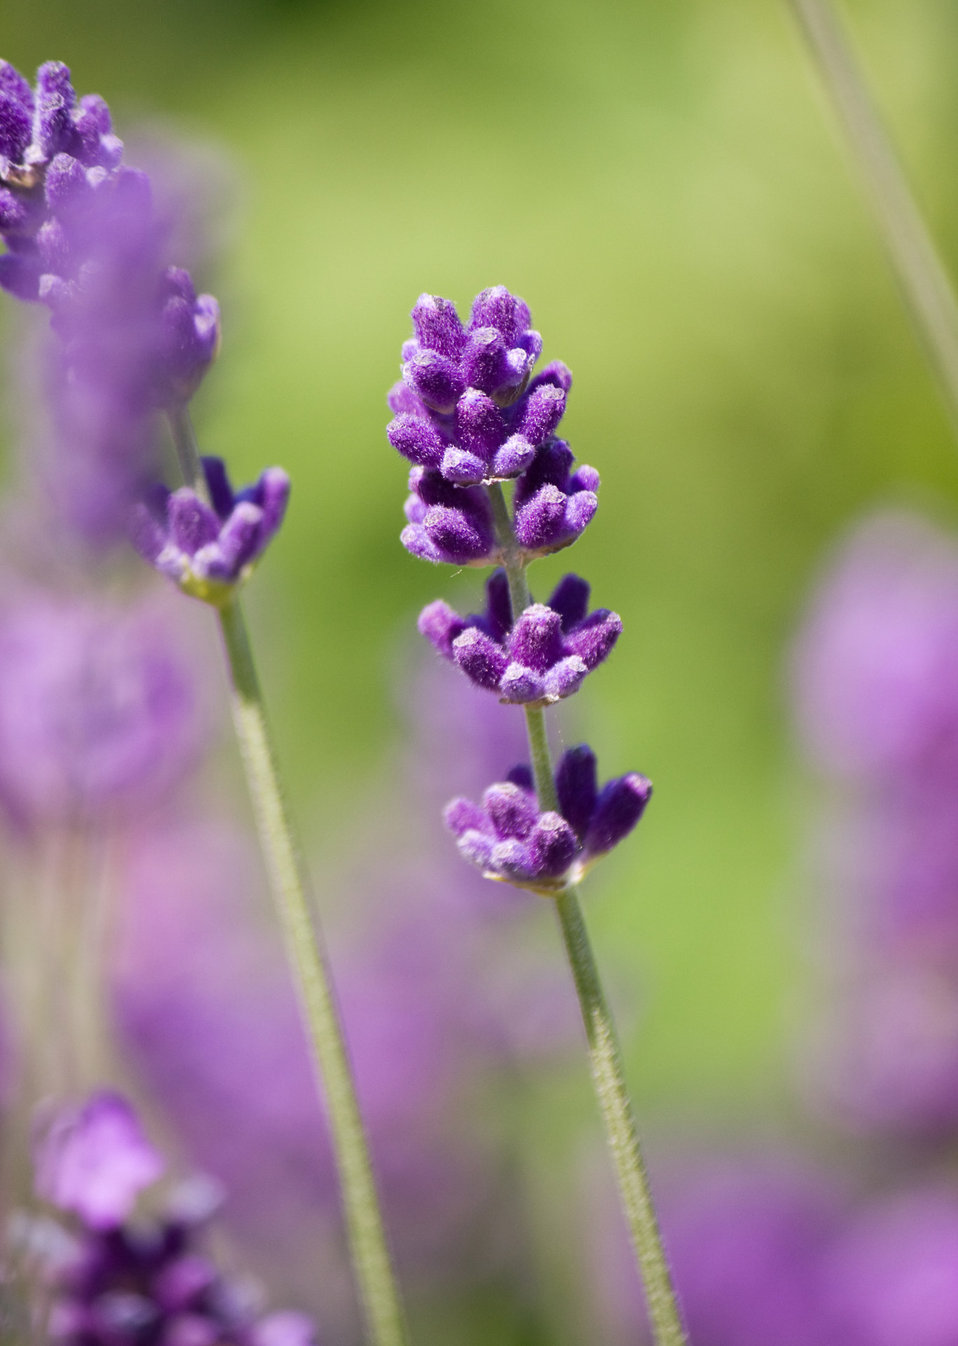 Lavender flower close-up